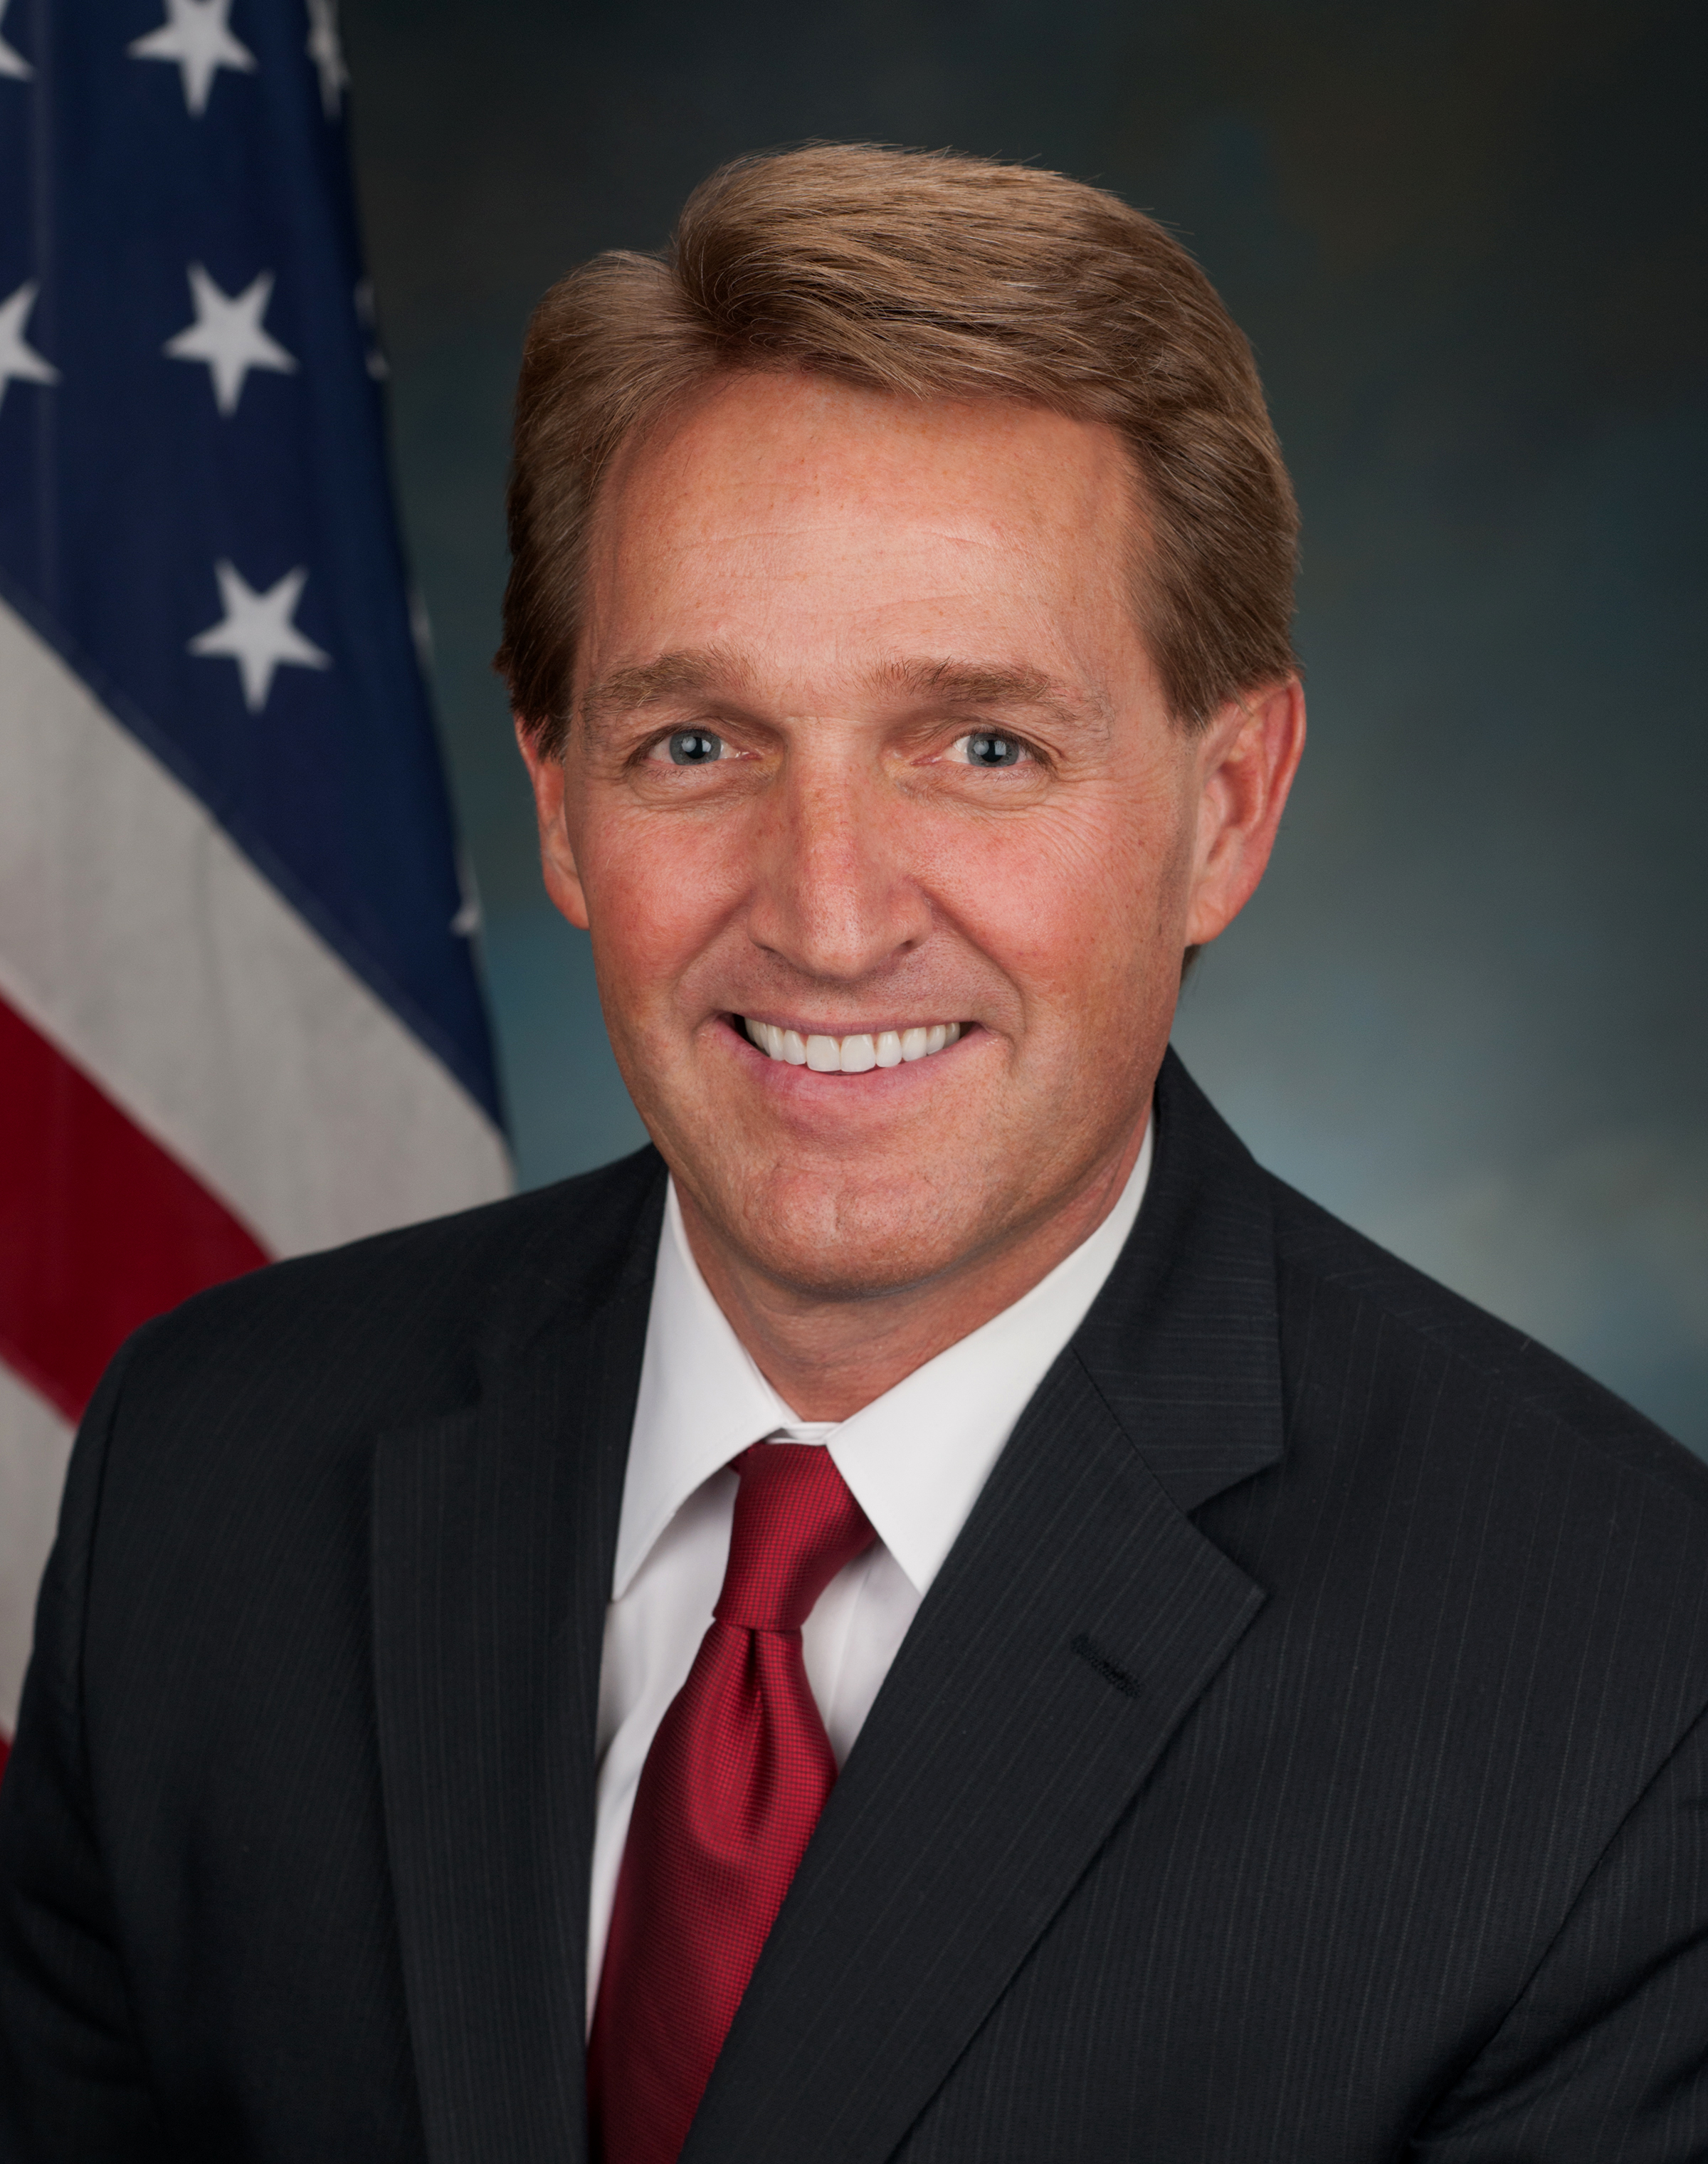 Jeff Flake's quote #6